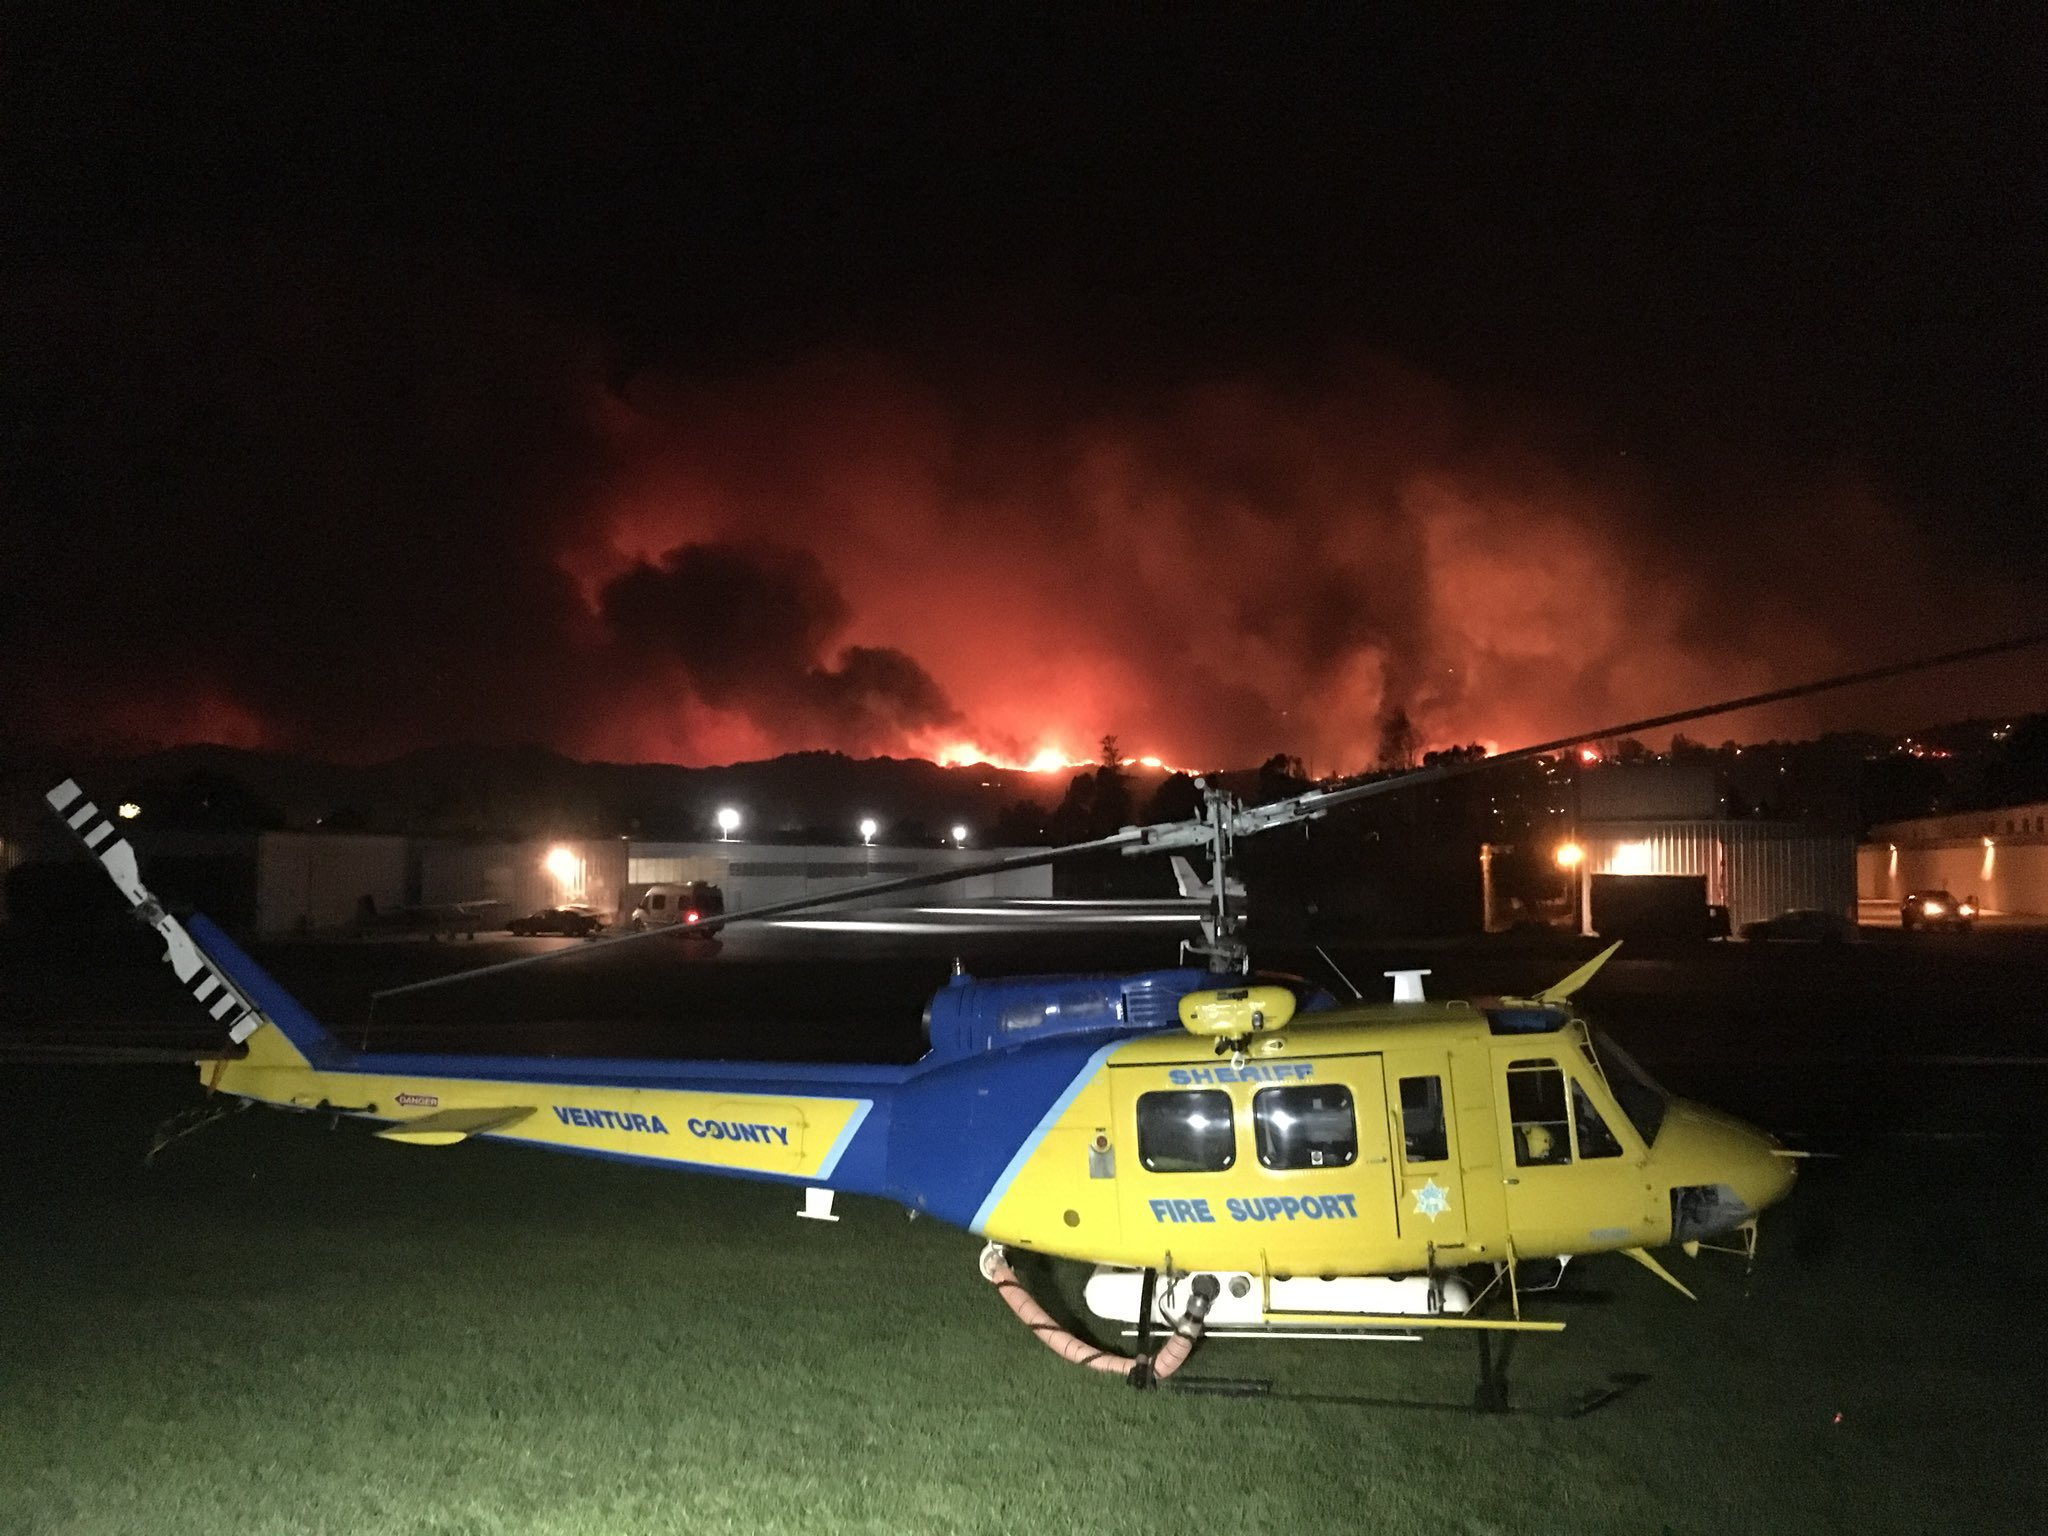 <div class='meta'><div class='origin-logo' data-origin='Creative Content'></div><span class='caption-text' data-credit='VenturaCoAirUnit'>Helicopter forced to land  at Santa Paula Airport due to 50 +MPH winds.</span></div>